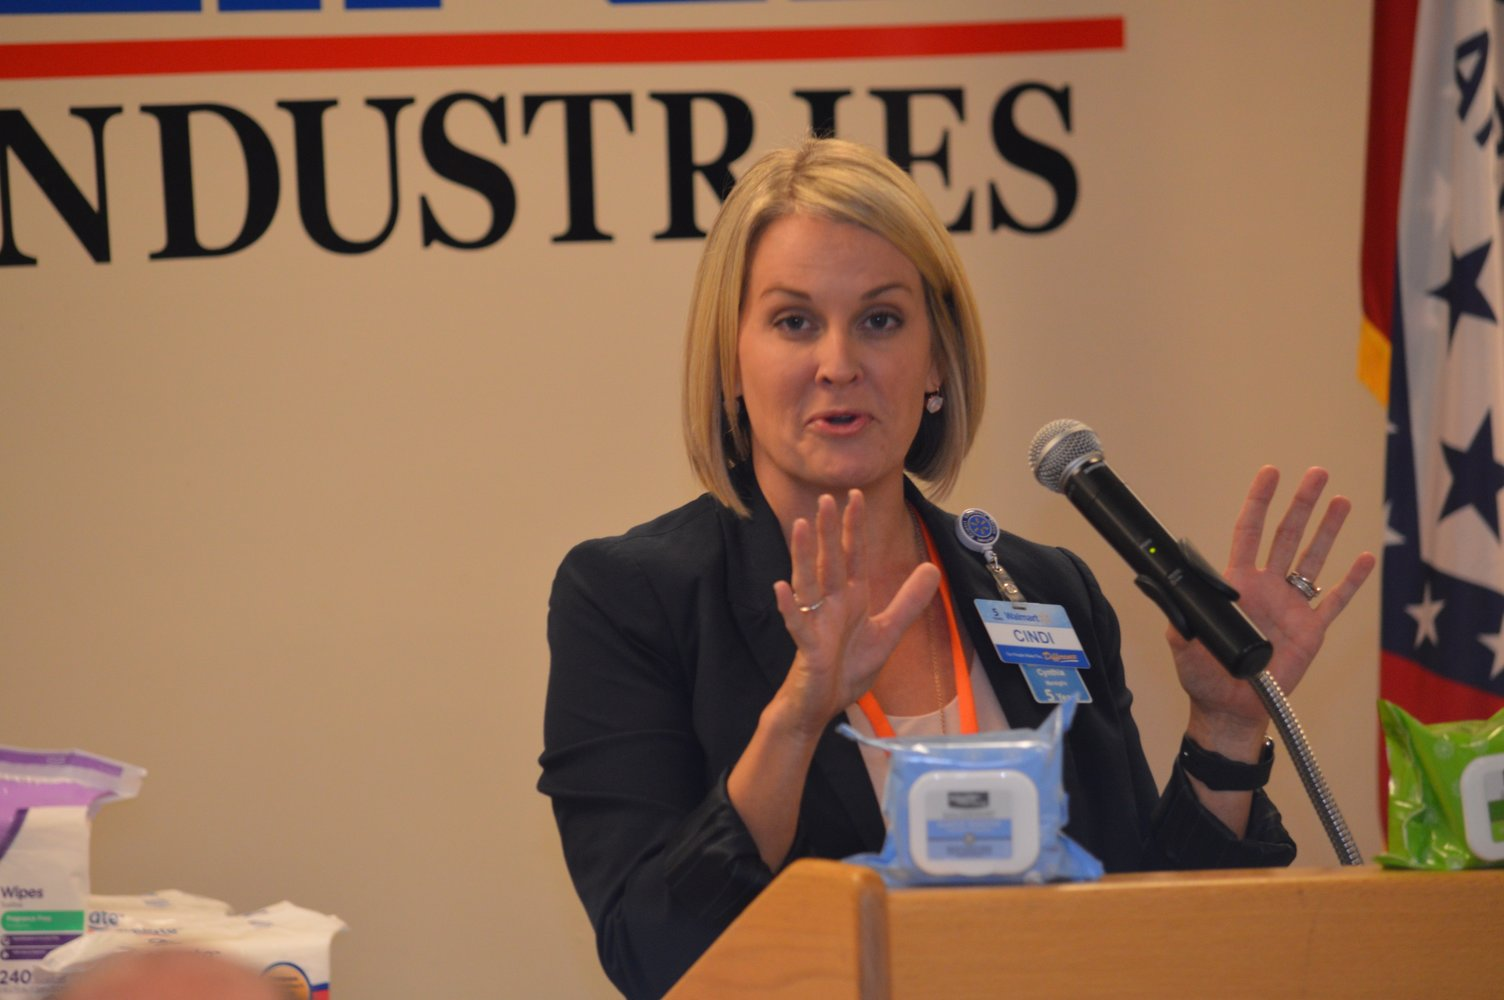 Cindi Marsiglio, vice president of U.S. manufacturing for Walmart, talked at today's ceremony about the importance of Rockline Industries and its decision to bring additional production back to the U.S.